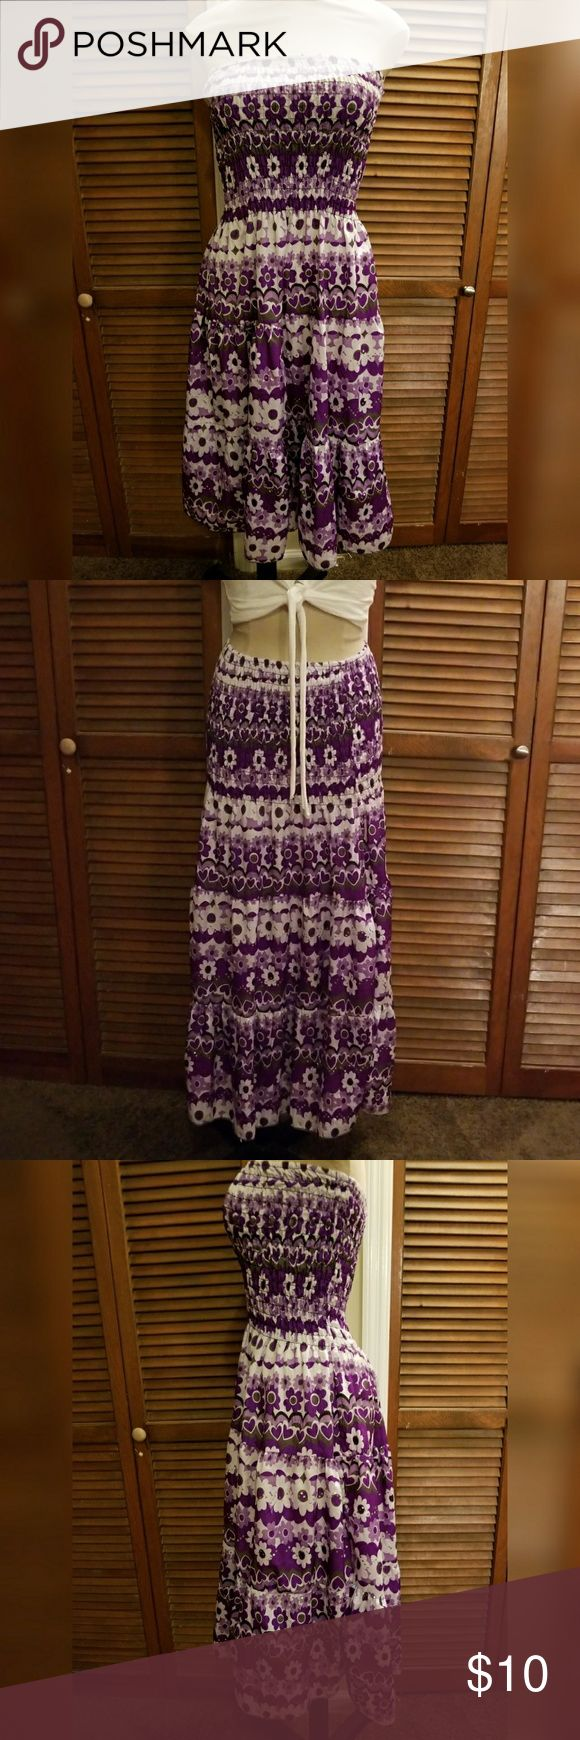 """🌼 Floral Print Tube Dress/Skirt Size XL      """"Jessica Taylor""""  purple and lavender.  can be worn as a tube dress or skirt Jessica Taylor Dresses"""